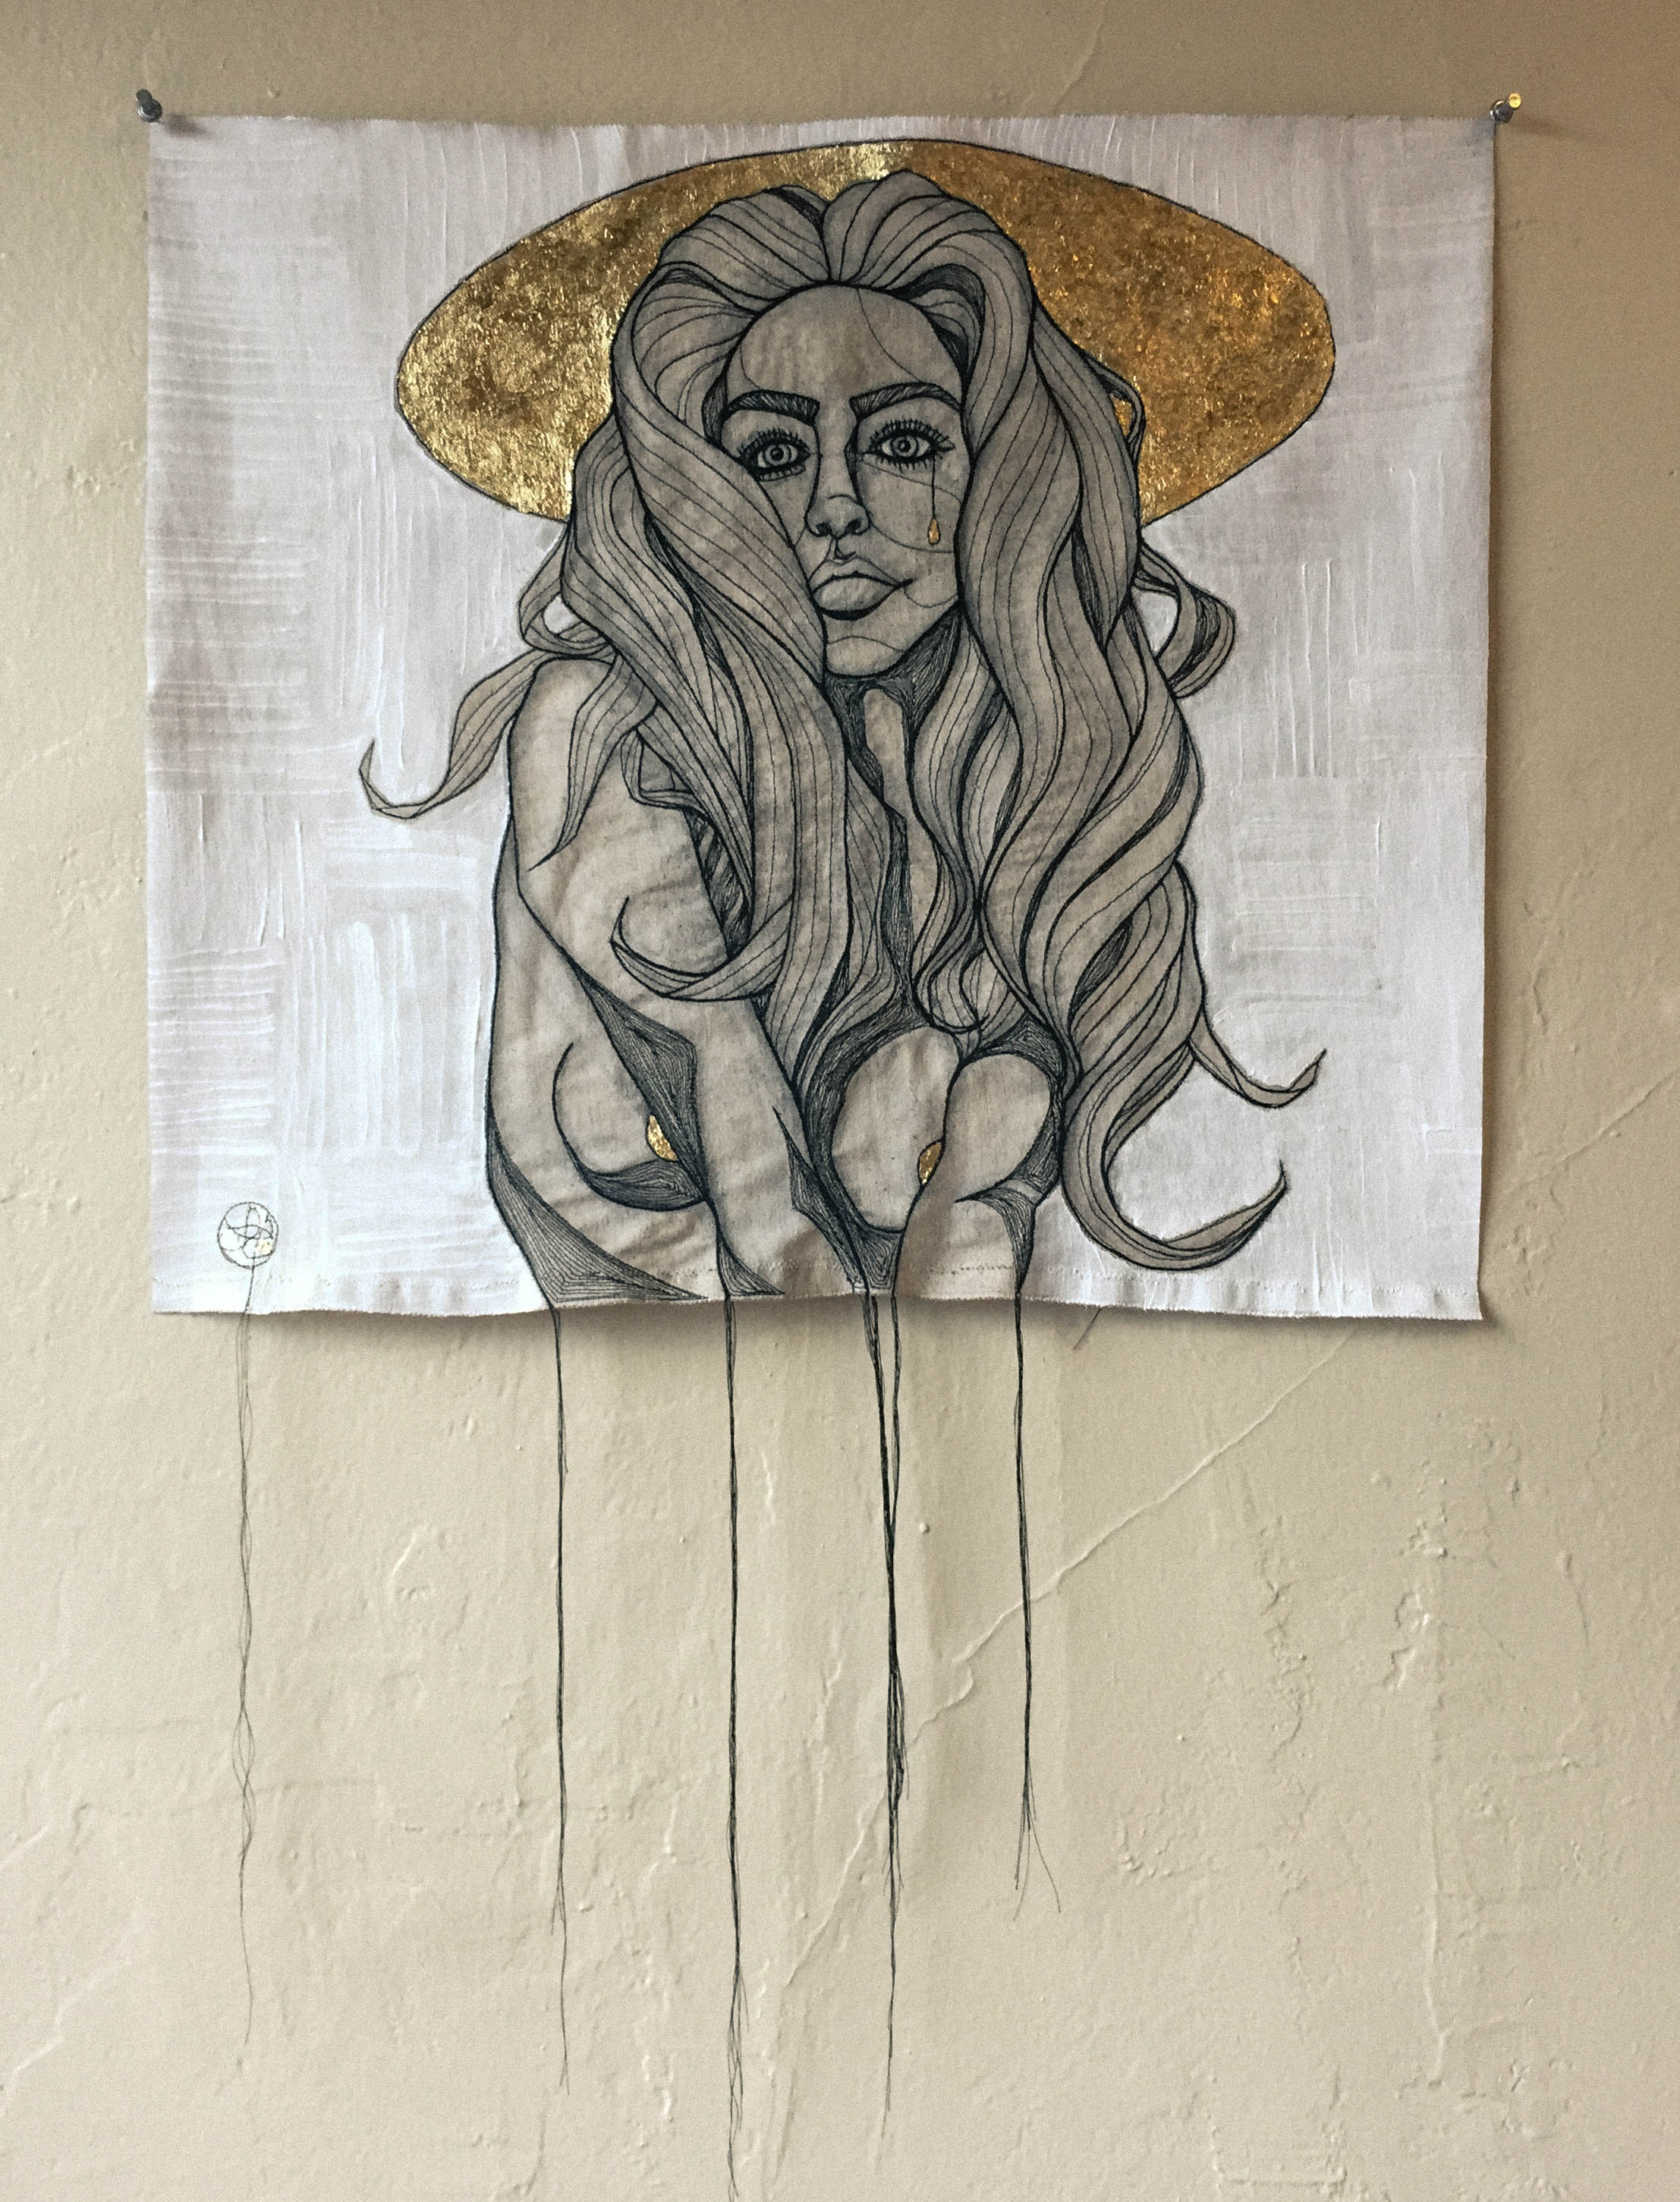 PRÉVALOIR  - COTTON THREAD, RAW DENIM, GOLD LEAF, ACRYLIC